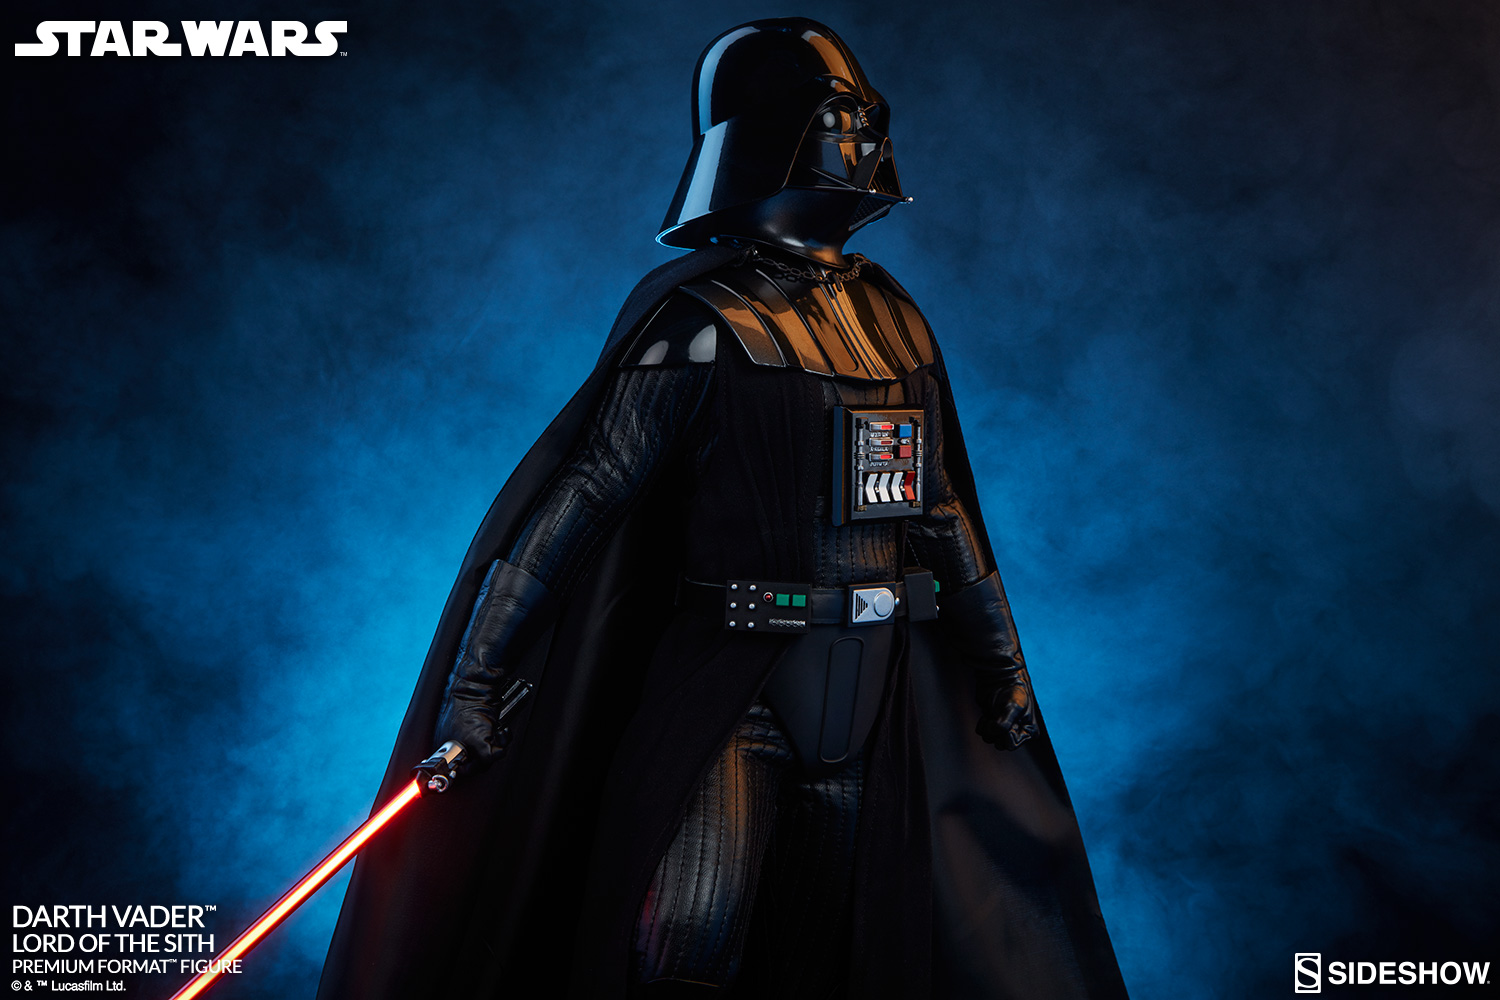 Star Wars Darth Vader - Lord of the Sith Premium Format(TM ...